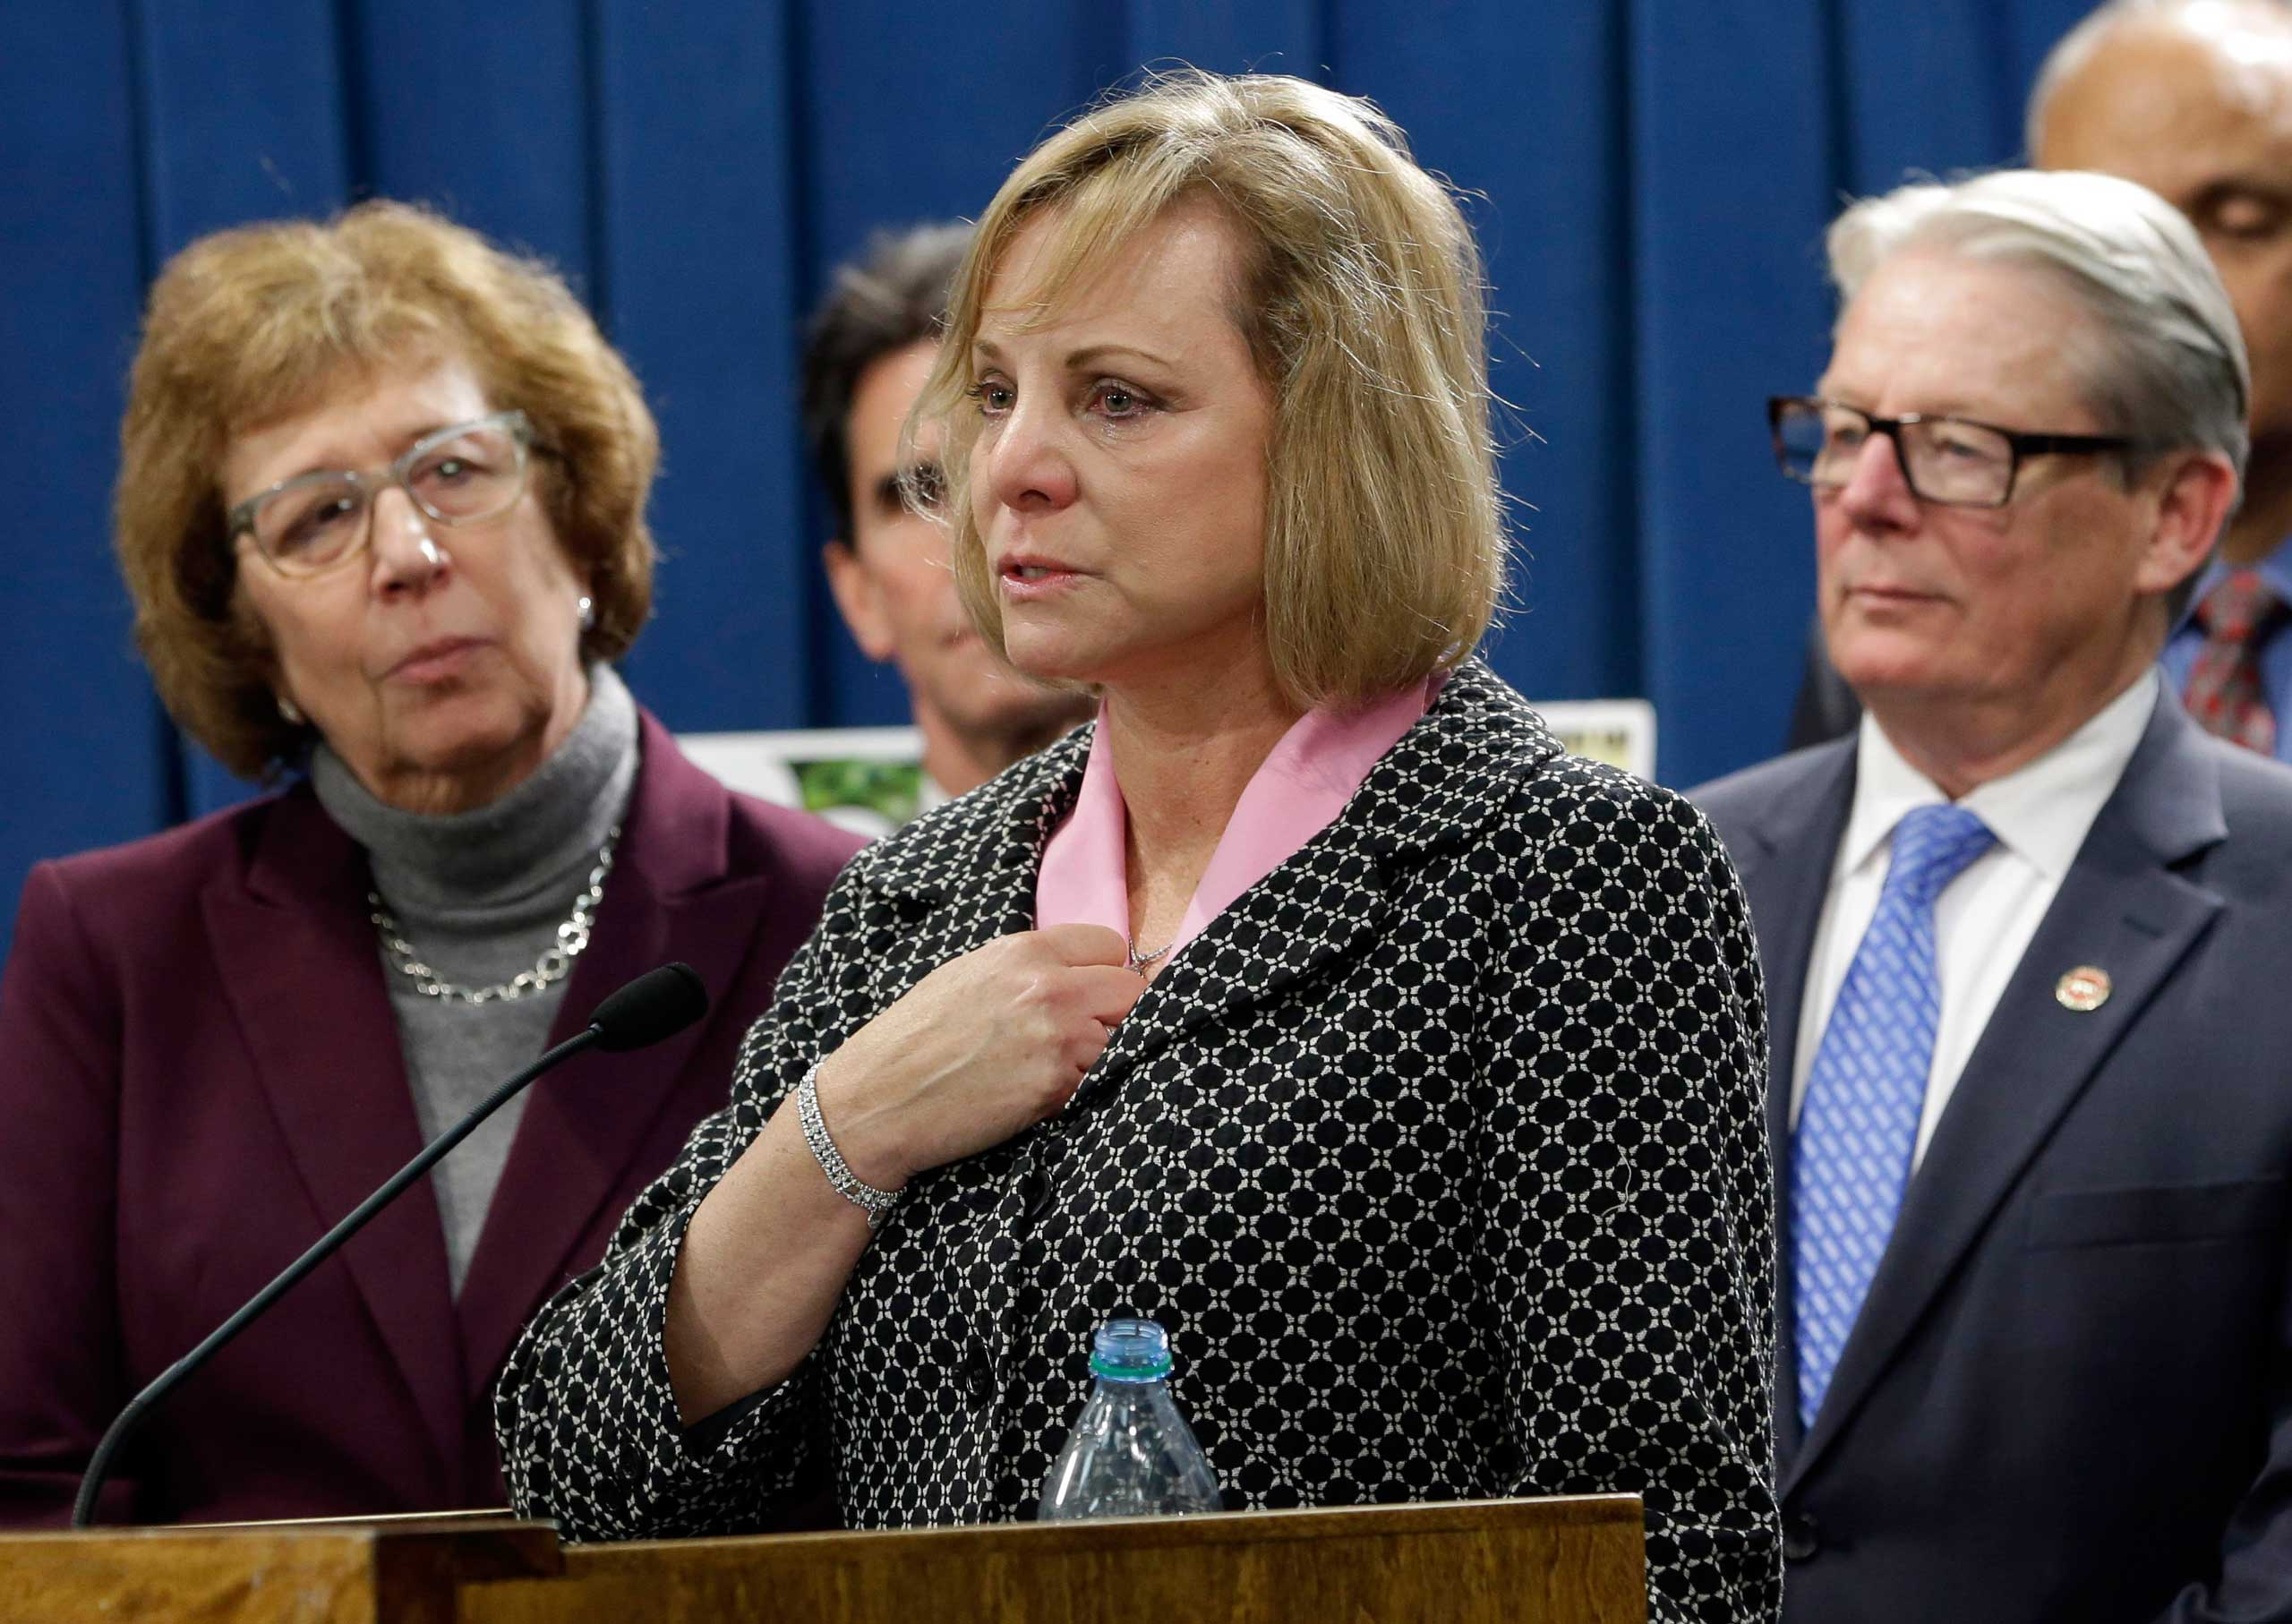 Debbie Ziegler, the mother of Brittany Maynard, speaks in support of proposed legislation allowing doctors to prescribe life-ending medication to terminally ill patients during a news conference at the Capitol, Jan. 21, 2015, in Sacramento, Calif.